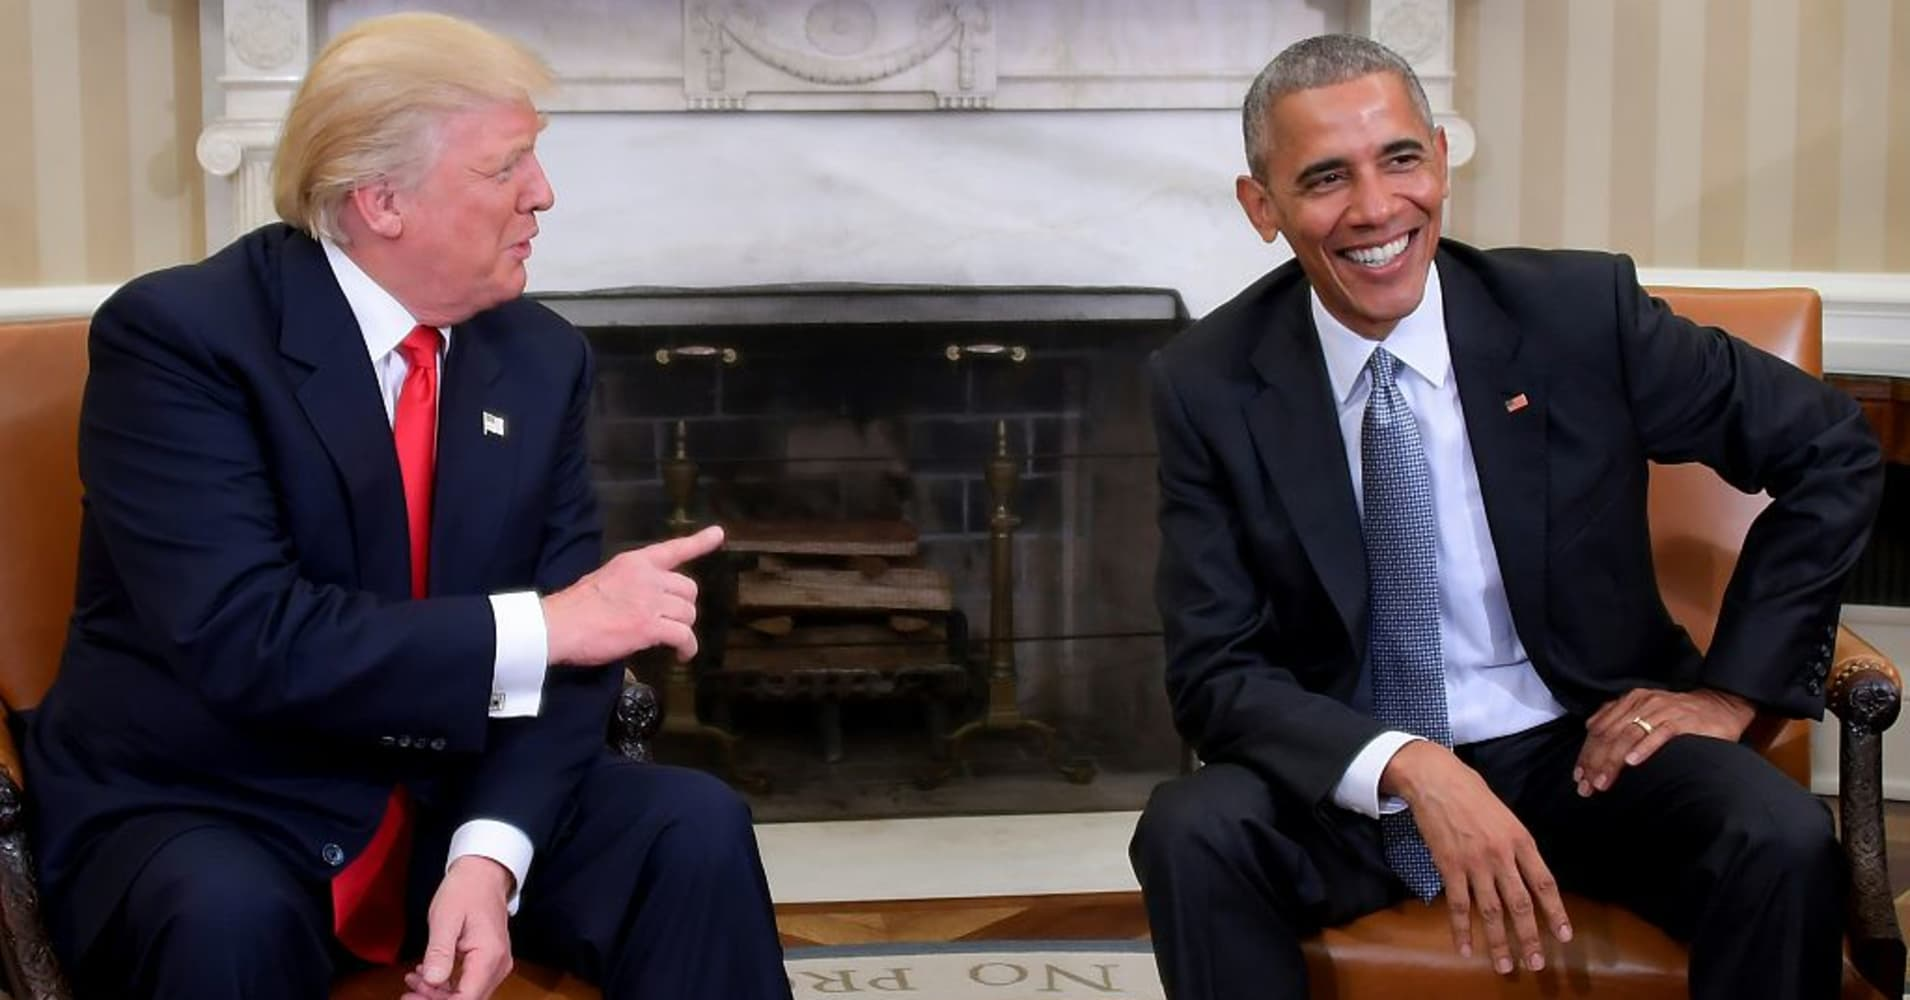 President Barack Obama meets with President-elect Donald Trump in the Oval Office at the White House on November 10, 2016 in Washington, DC.